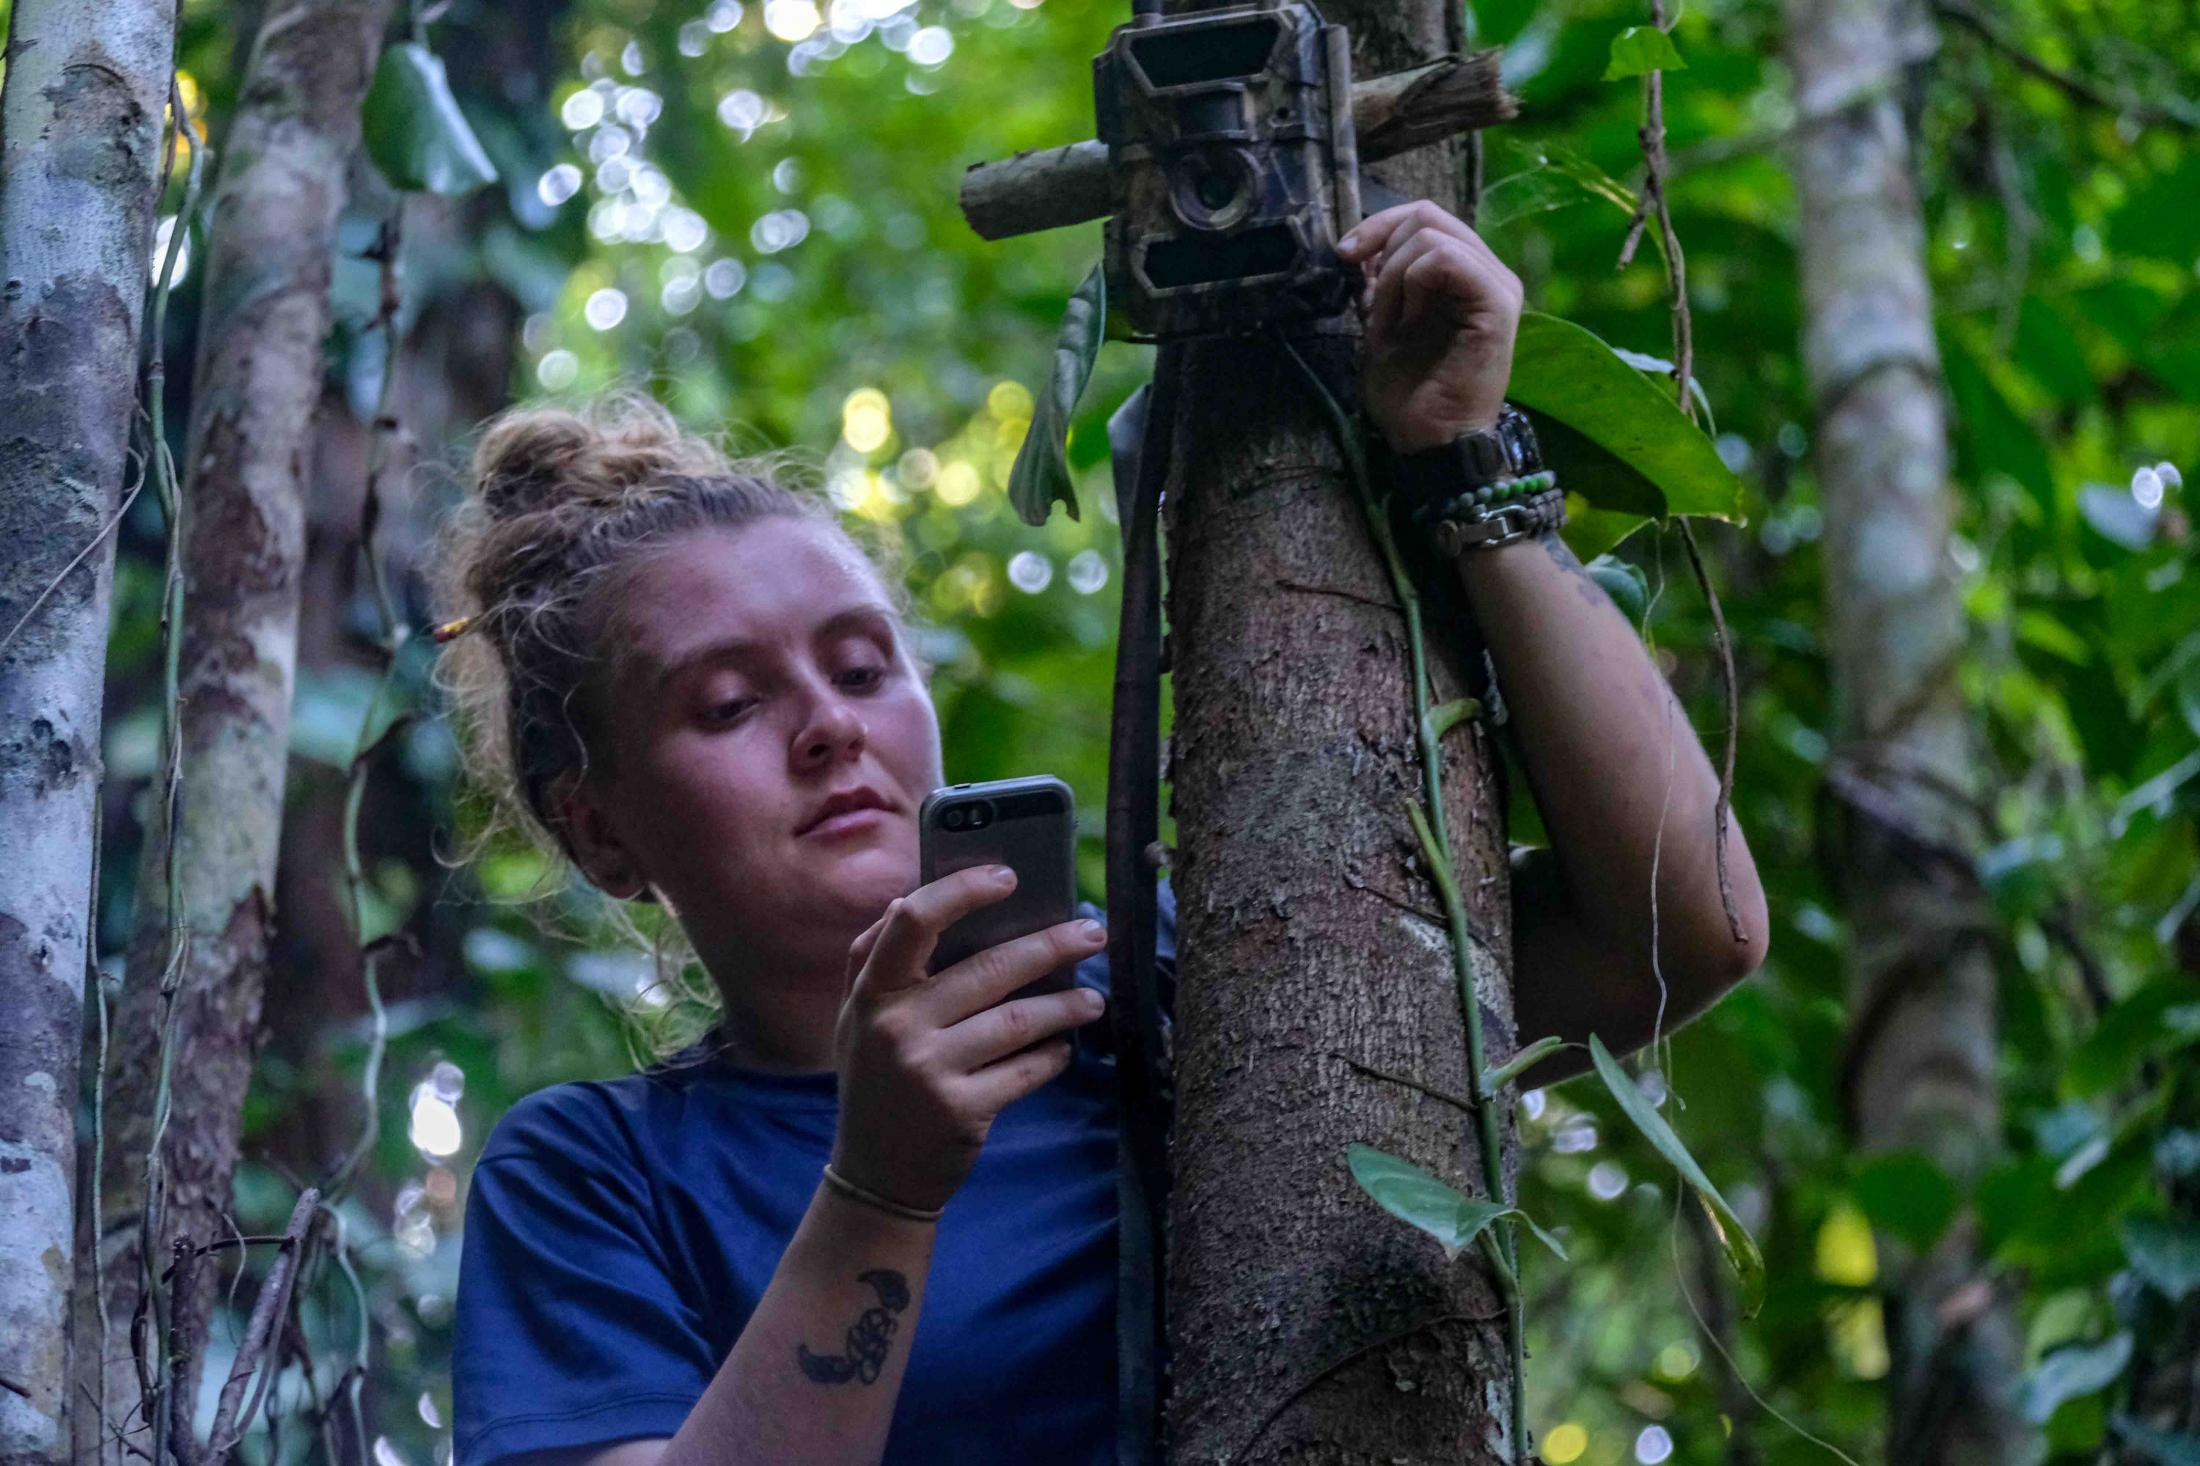 Conservation technology is increasingly being used to prevent illegal logging and hunting in real-time. At Osa Conservation, we installed several GSM cameras surrounding National Parks and the biological station. These cameras send a photo or video in real-time to a smartphone whenever somebody is detected passing by. In this way, it is possible to alert nearby ranger stations. The future of conservation is bright if we can effectively bring technology to process information more efficiently.